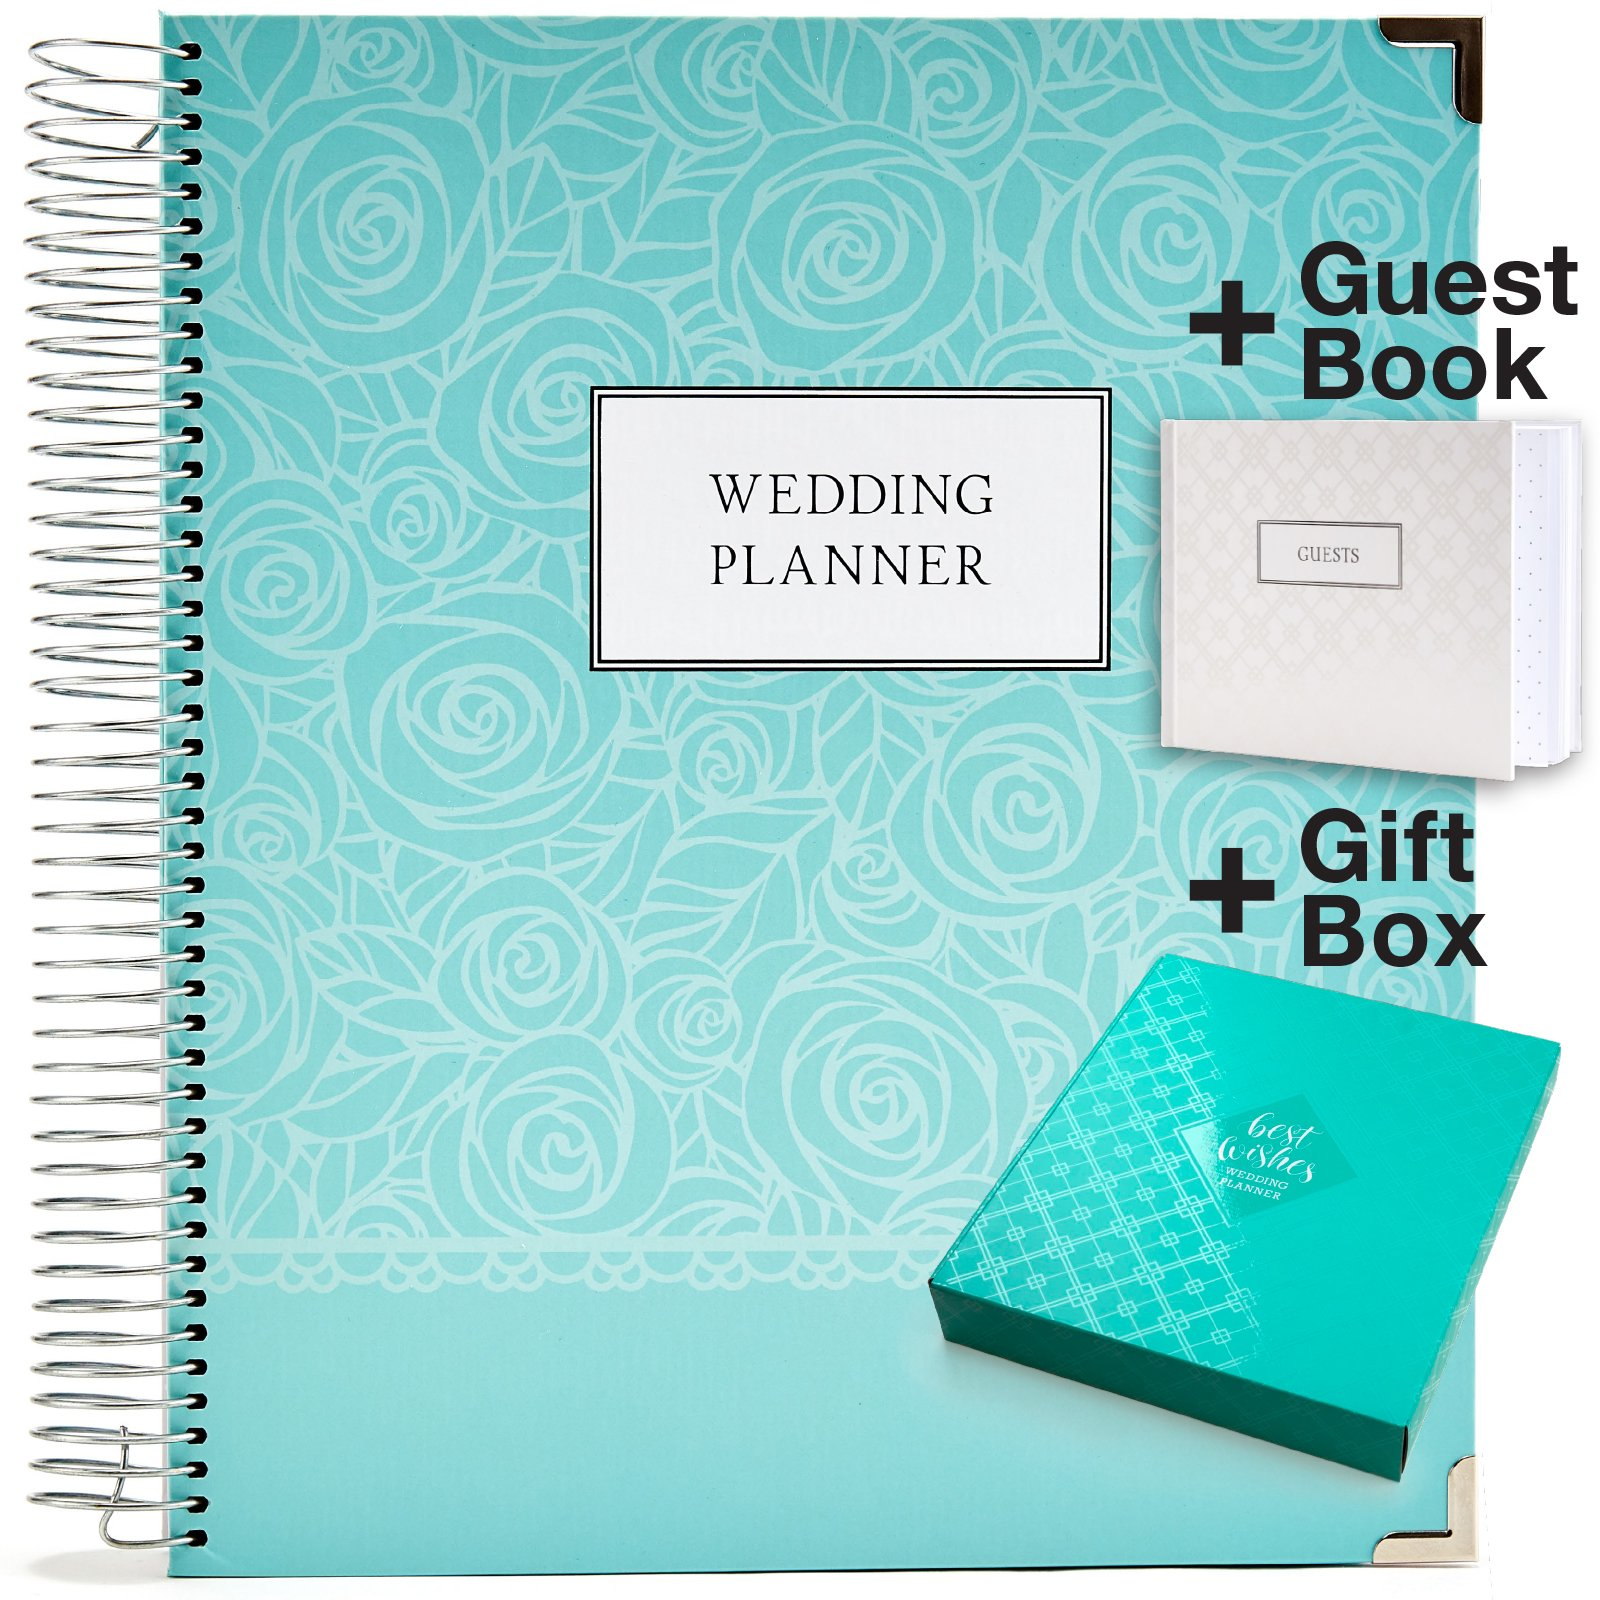 Wedding Planner Gift Set for The Bride to Be: 9x11 Hardcover Wedding Planner and Organizer, Gift Box, Guest Book, Bookmark, Planning Stickers, Business Card Holder, and Pocket Folders (Silver) by Global Printed Products